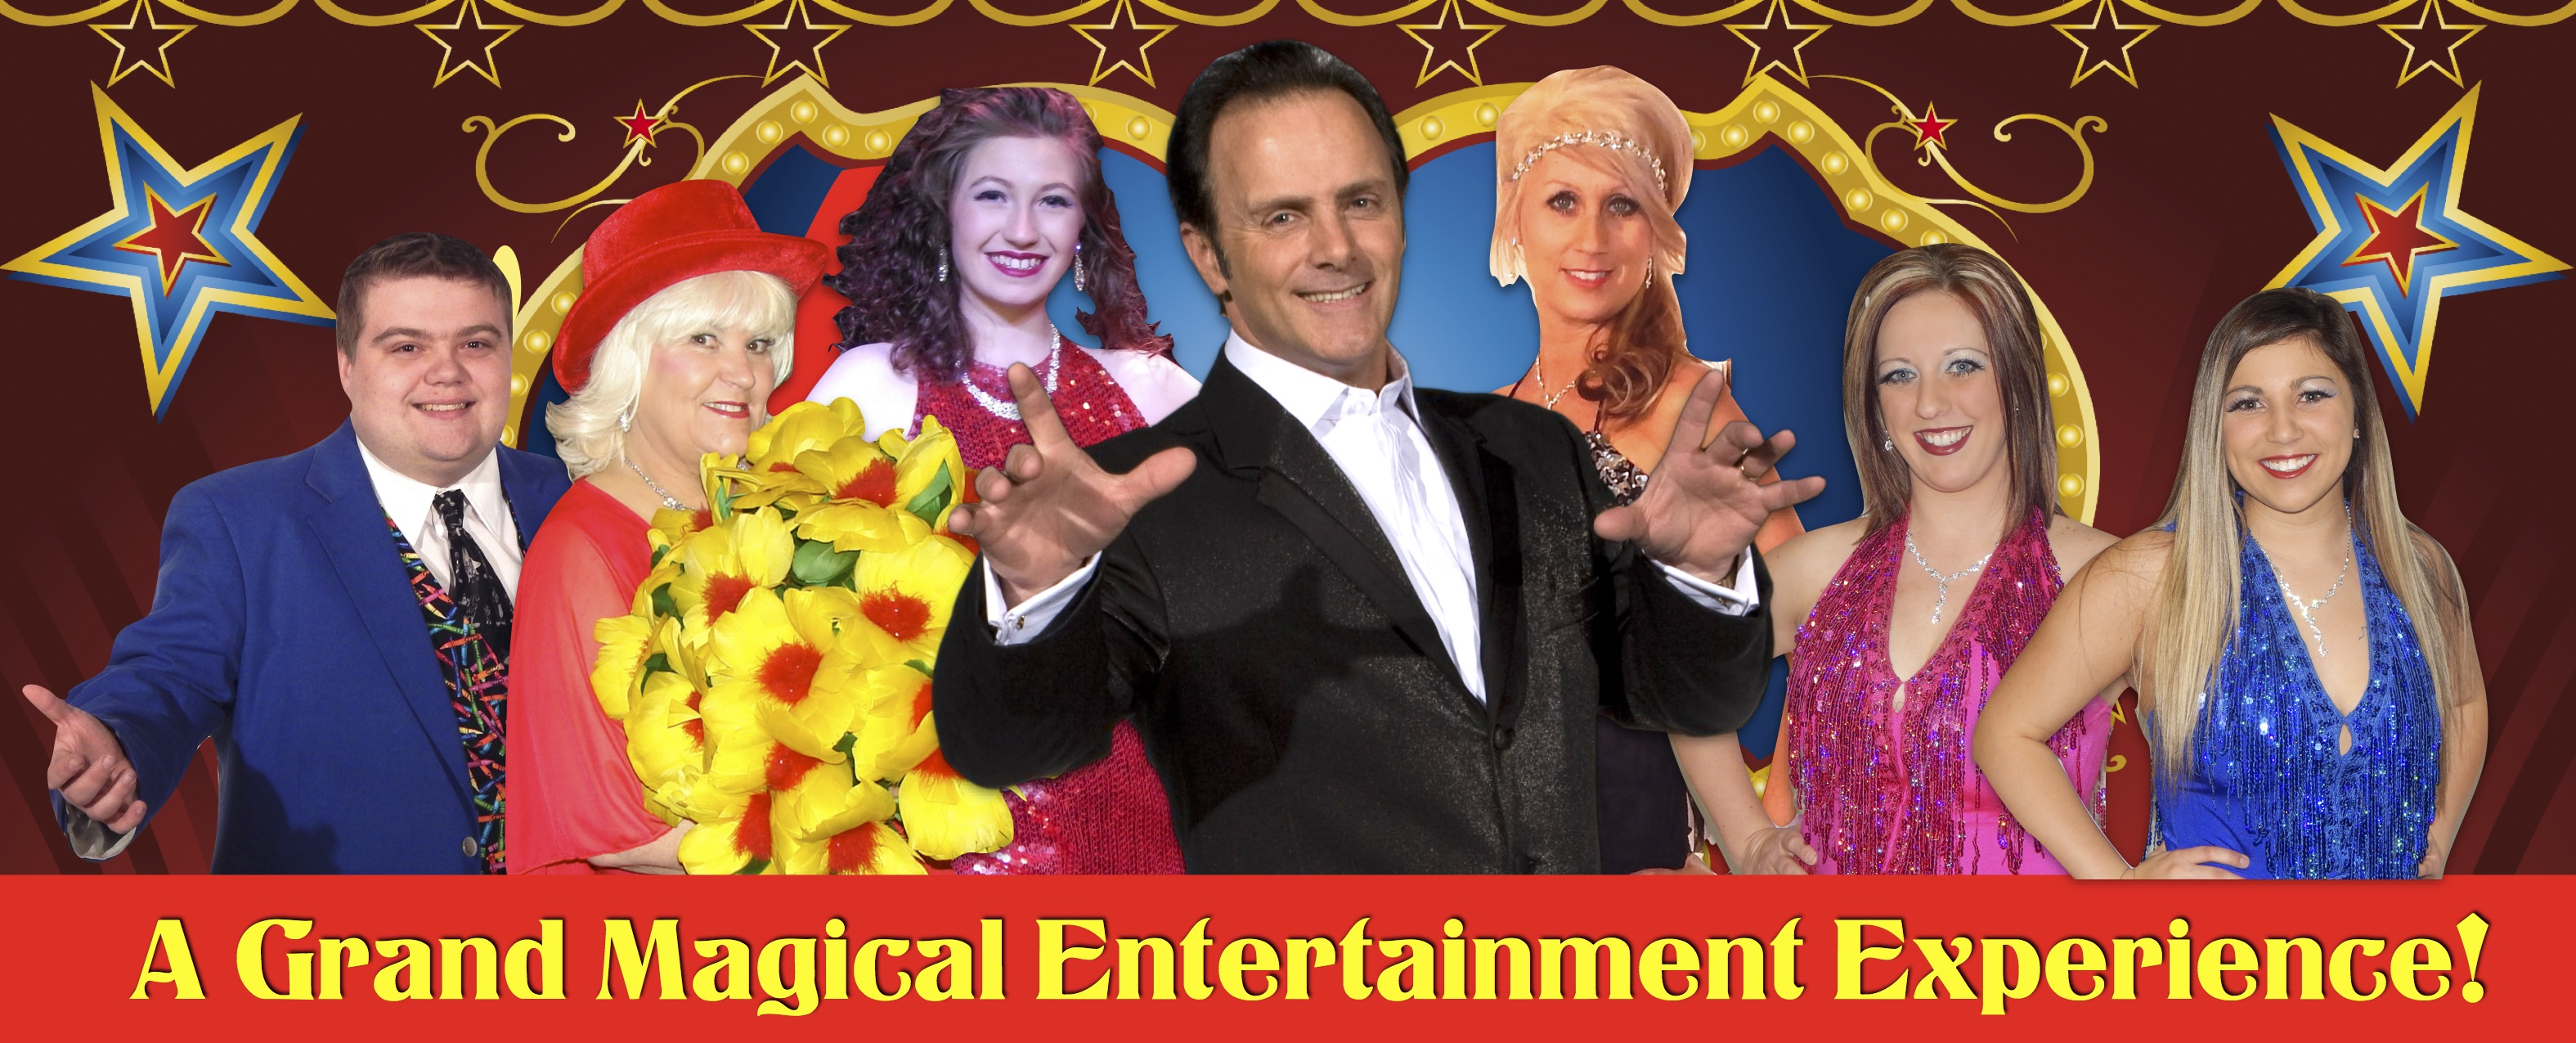 Bringing grand magical experiences to audiences across America!